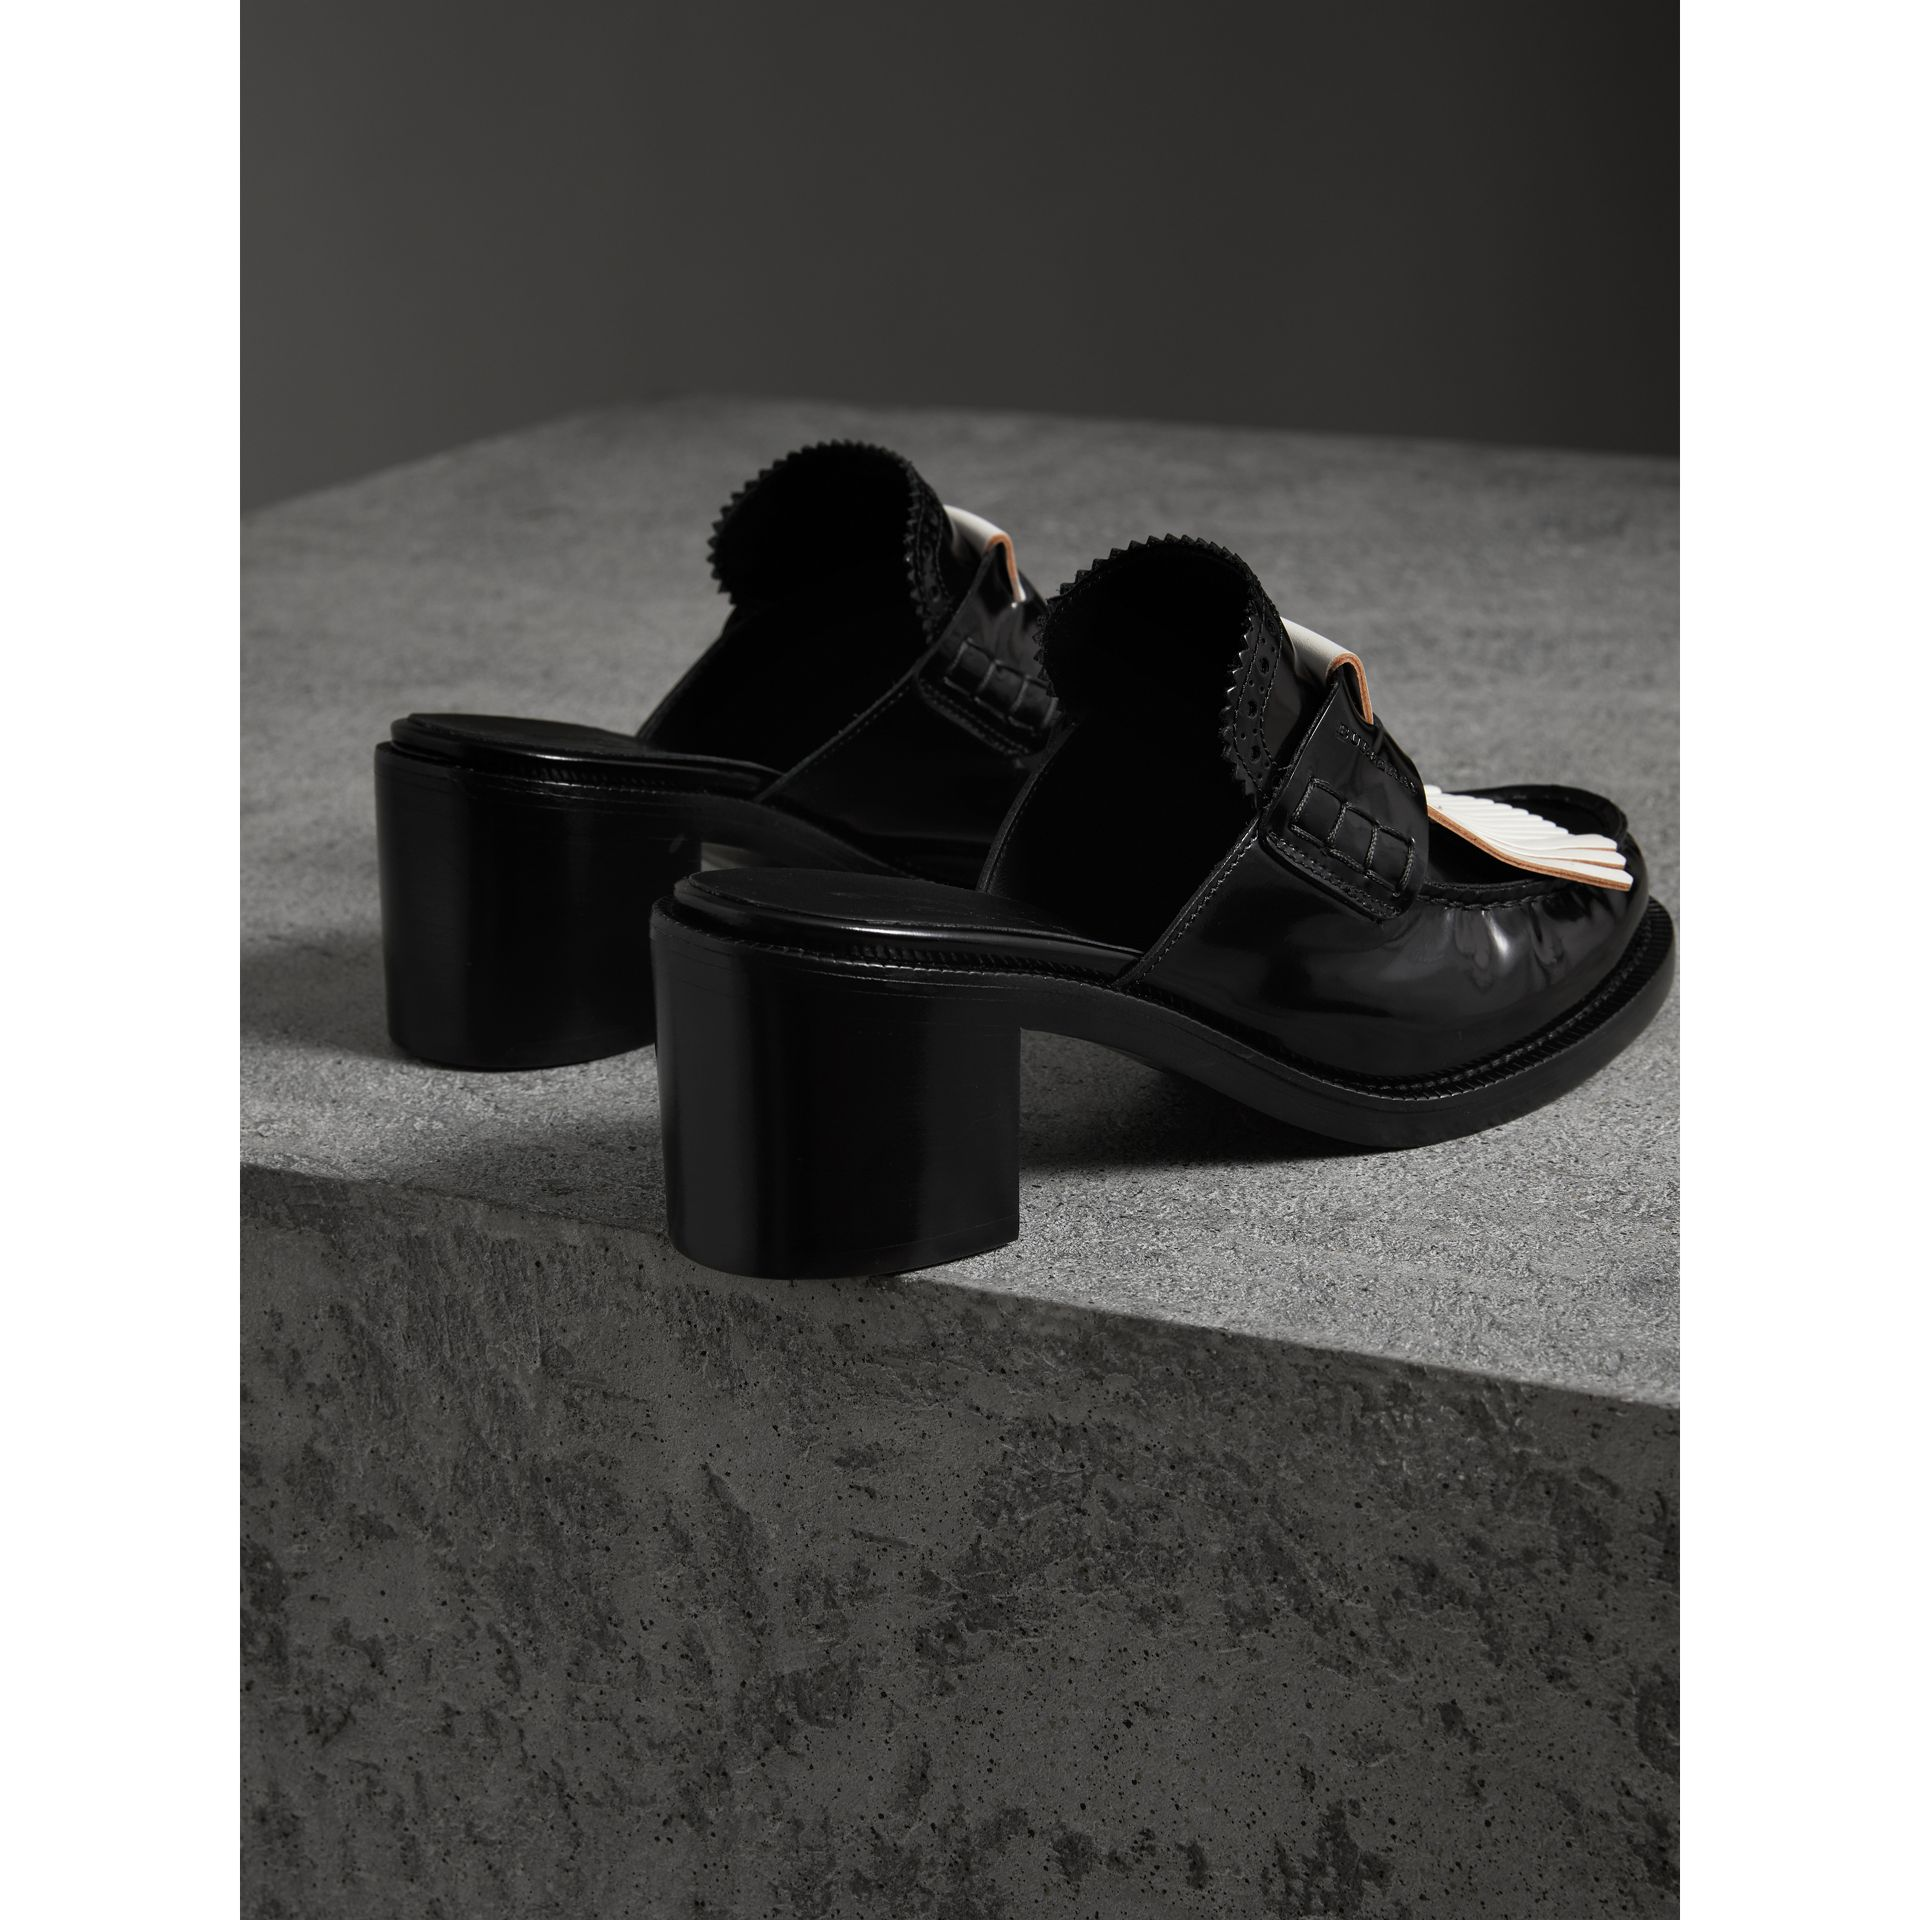 Contrast Kiltie Fringe Leather Block-heel Mules in Black - Women | Burberry - gallery image 2